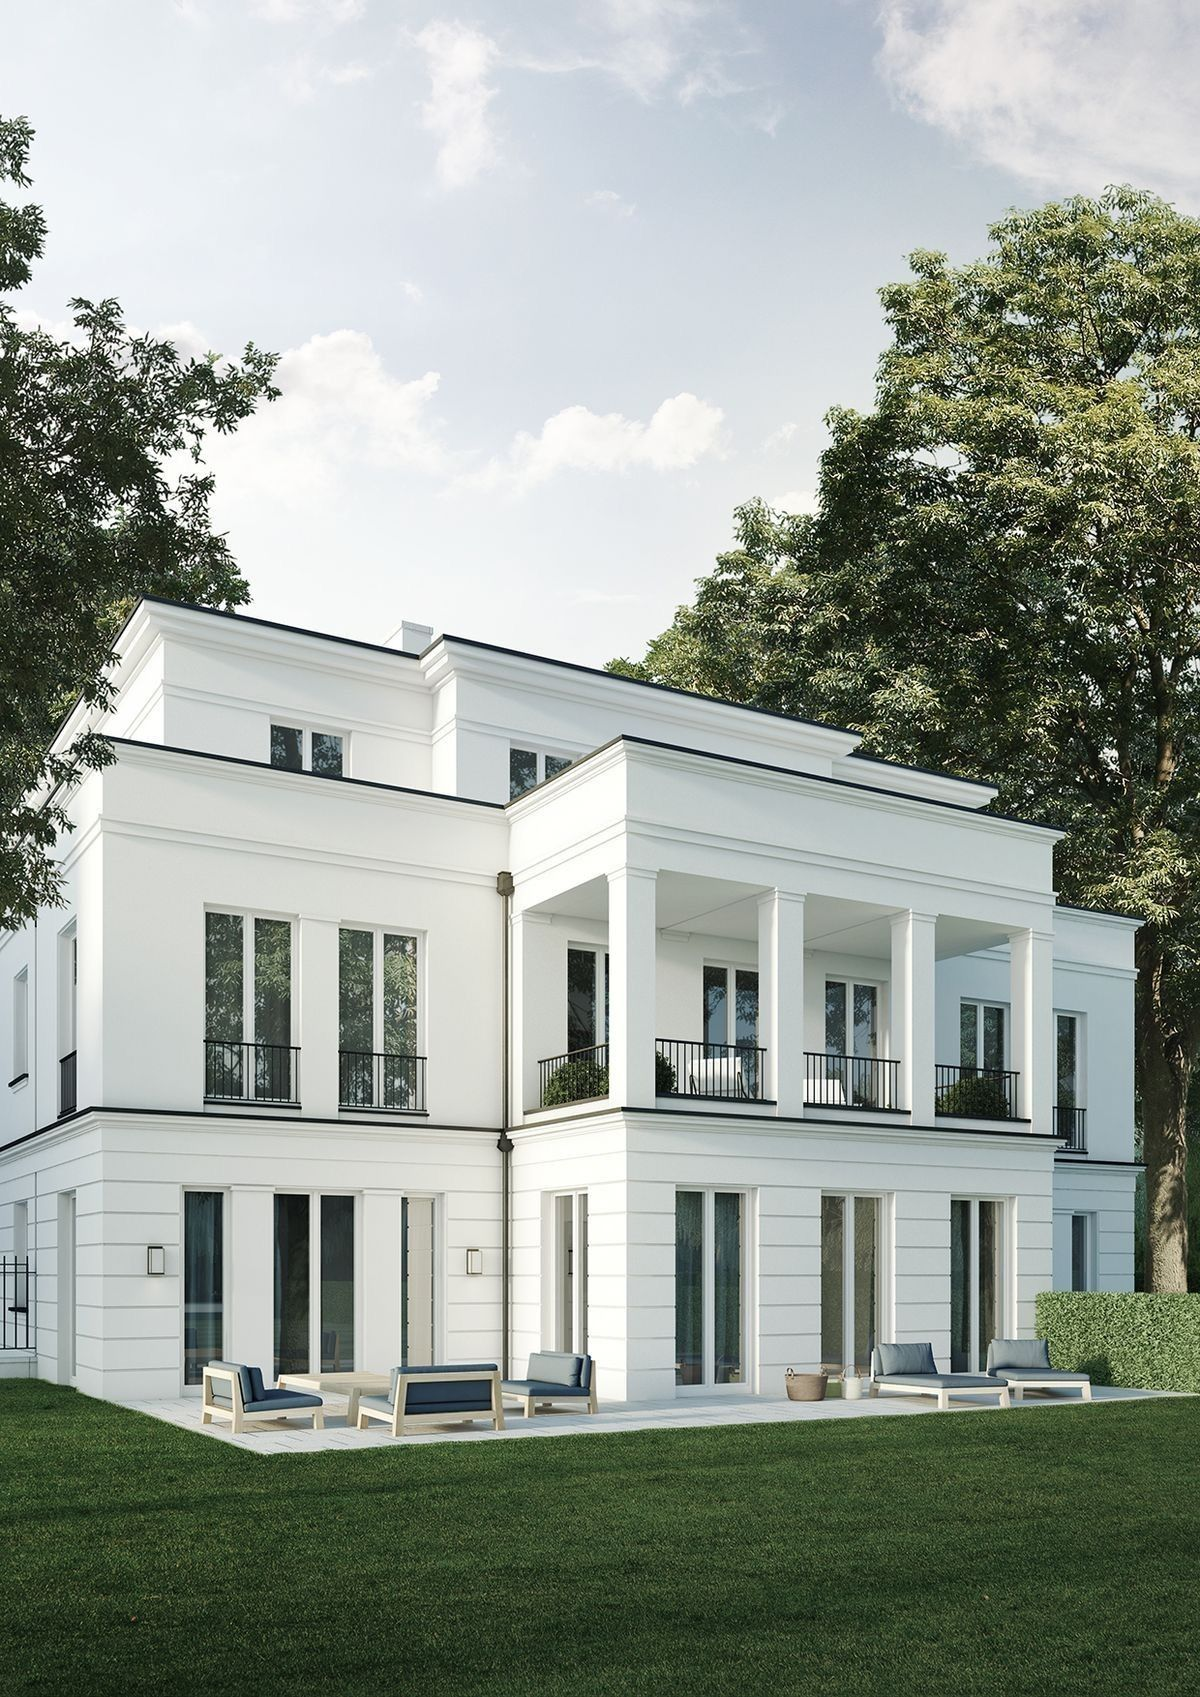 17 Inspirational Neoclassical Home Plans Neoclassical Home Plans Best Of Grand Salon Exterior Windows Roof Dream Facade House Architecture House House Exterior